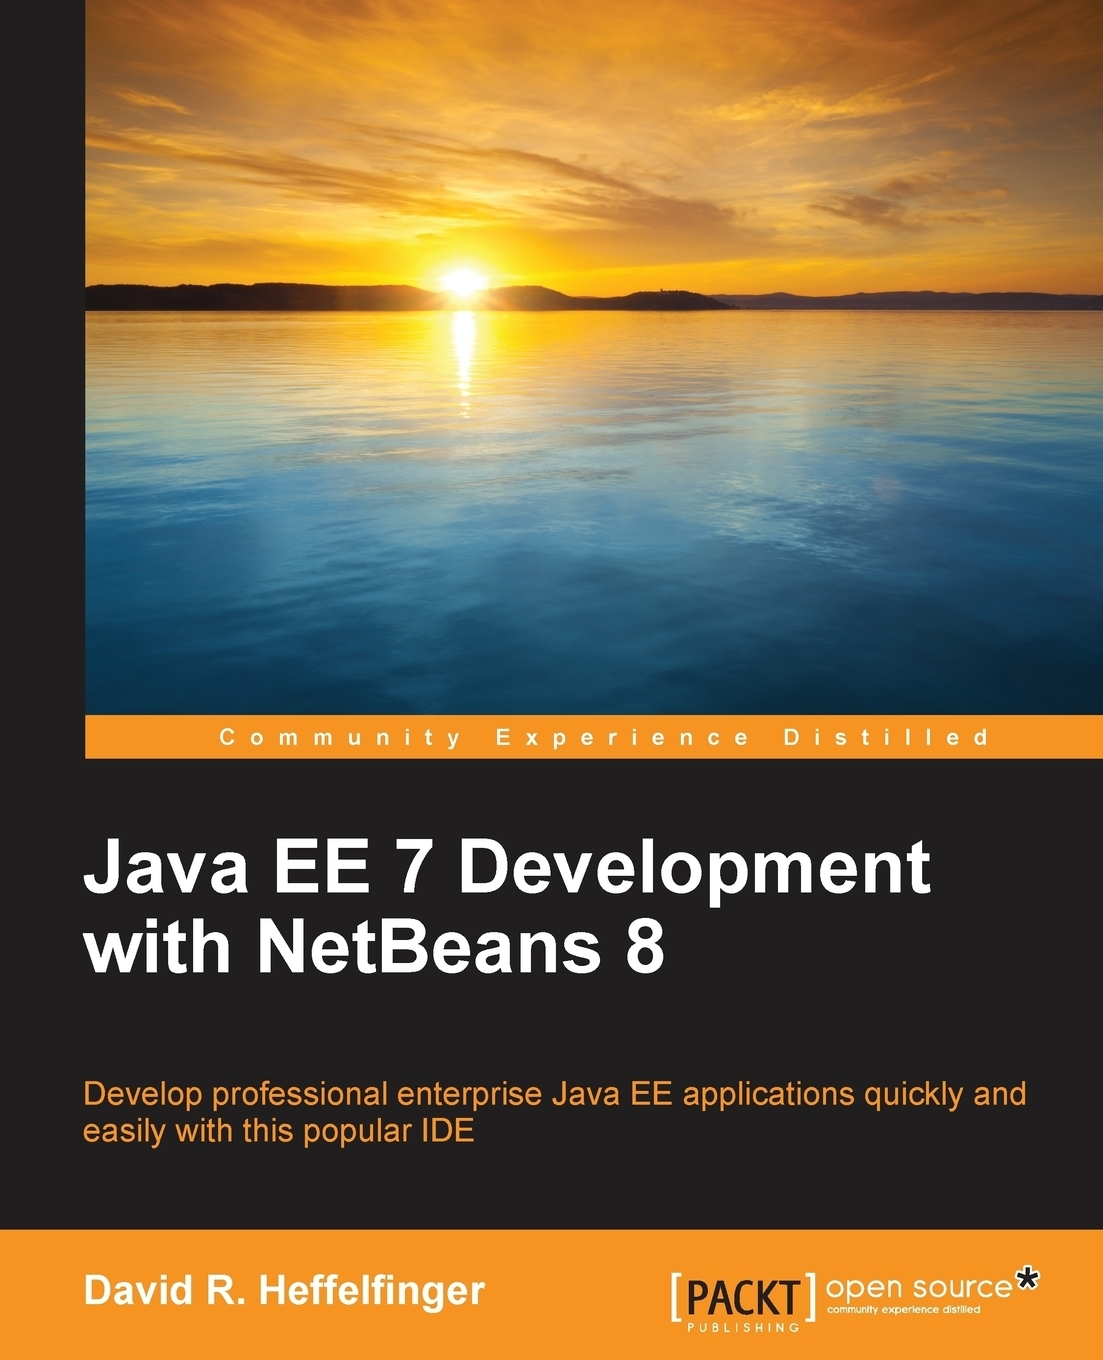 David R. Heffelfinger Java EE 7 Development with NetBeans 8